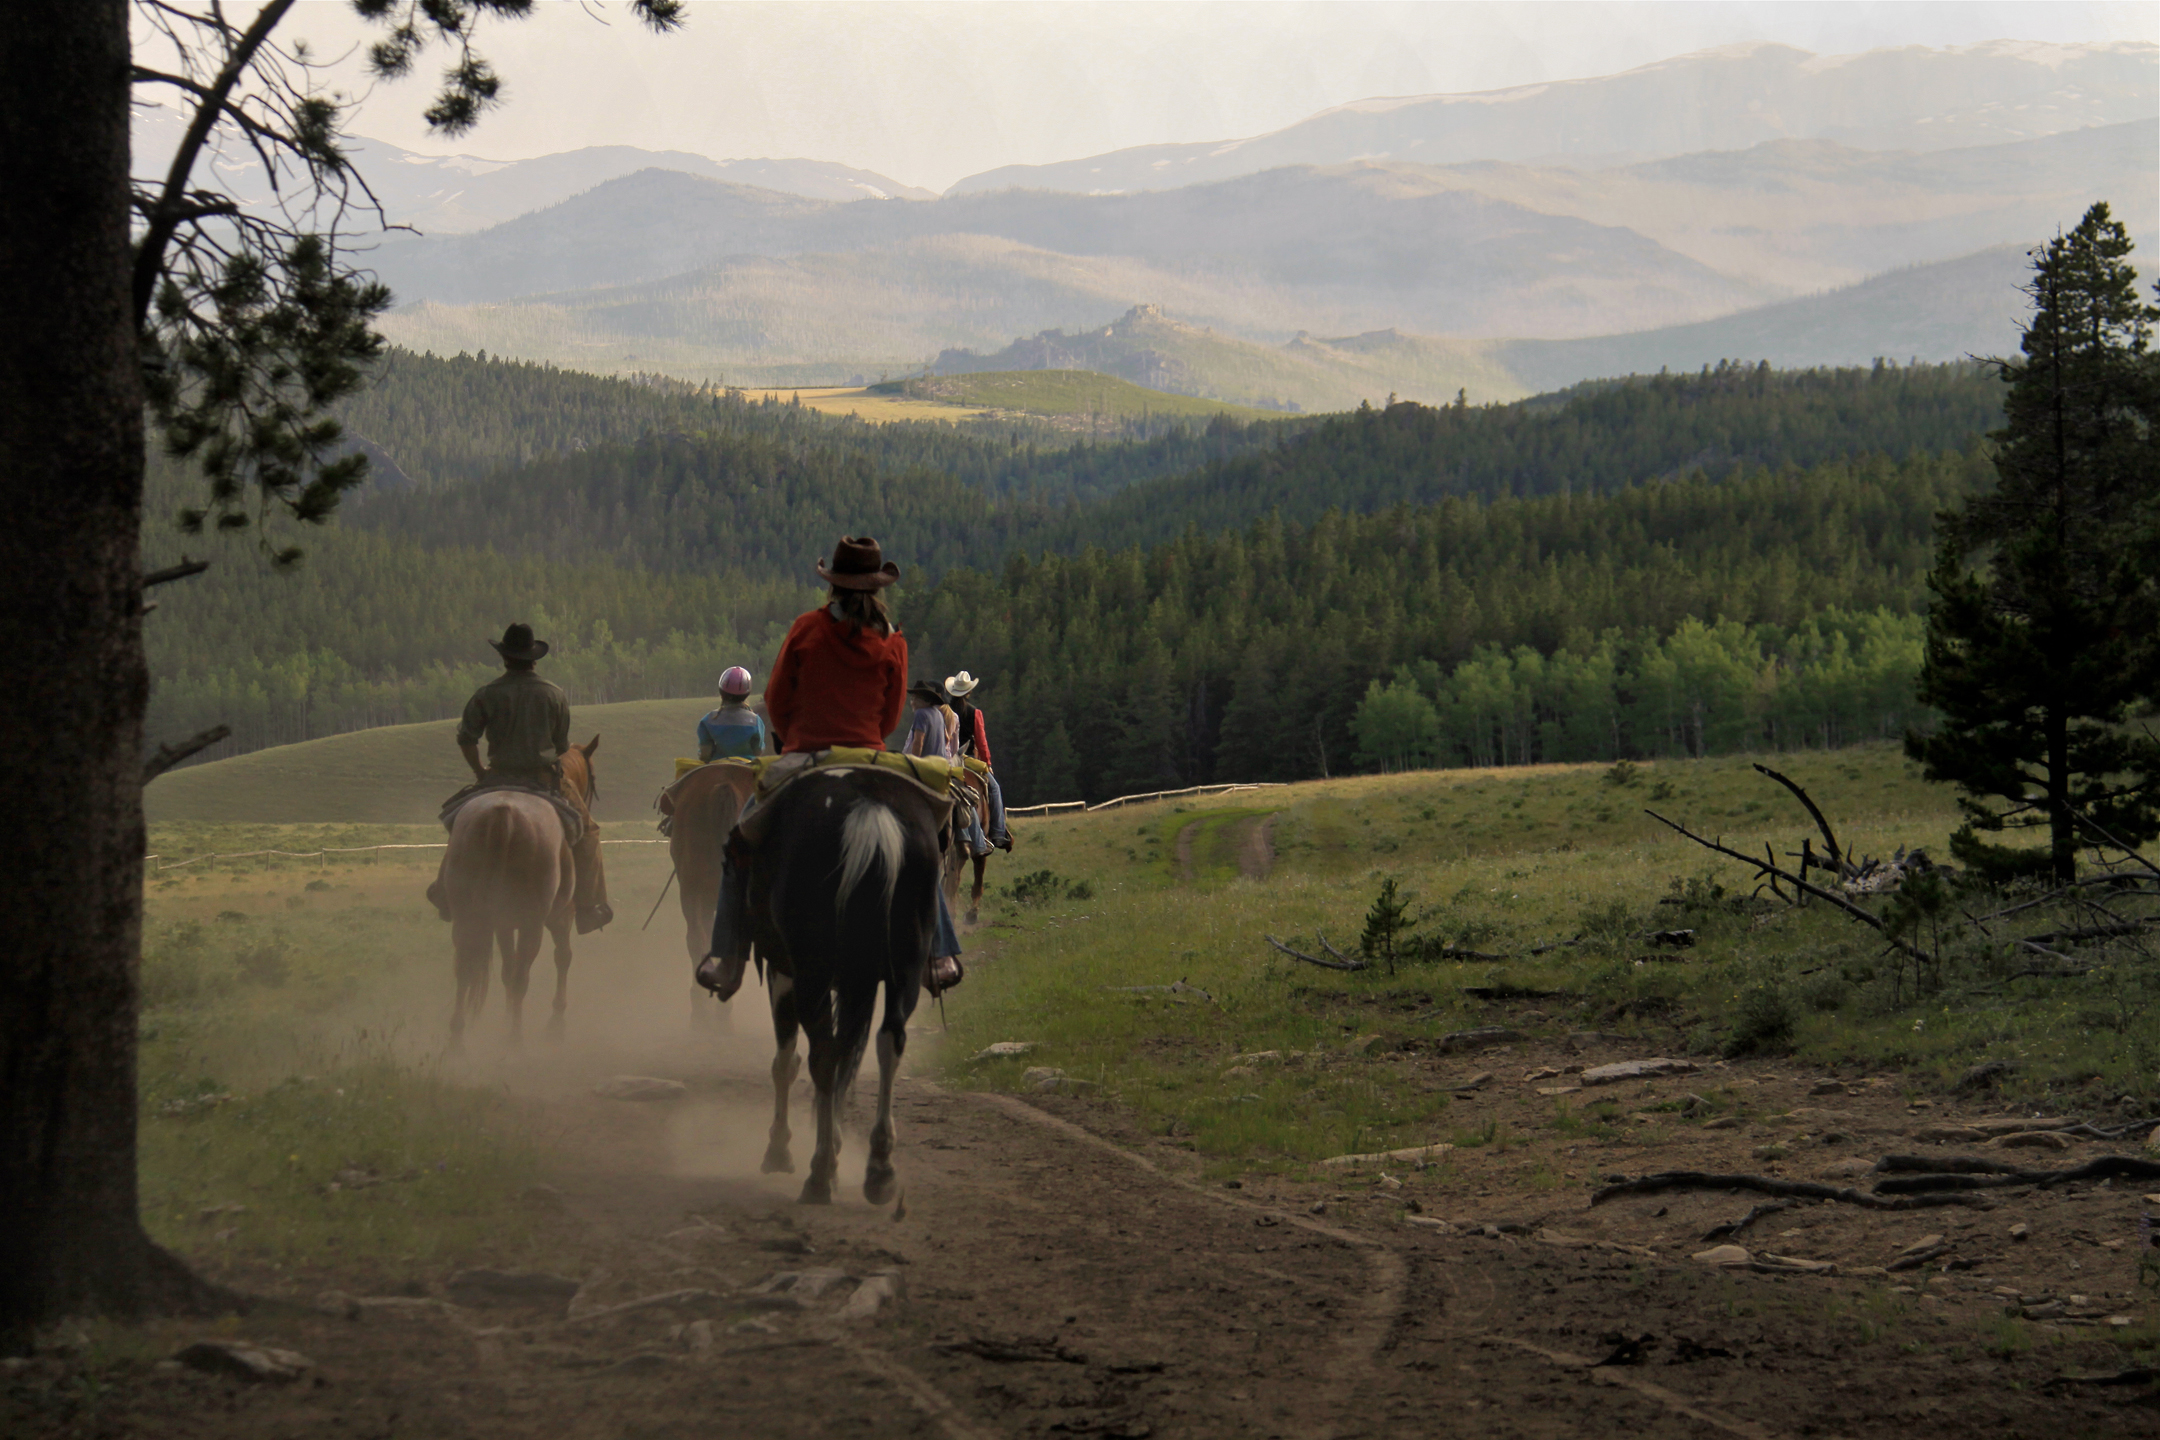 horseback riding vacation where to go horseback riding